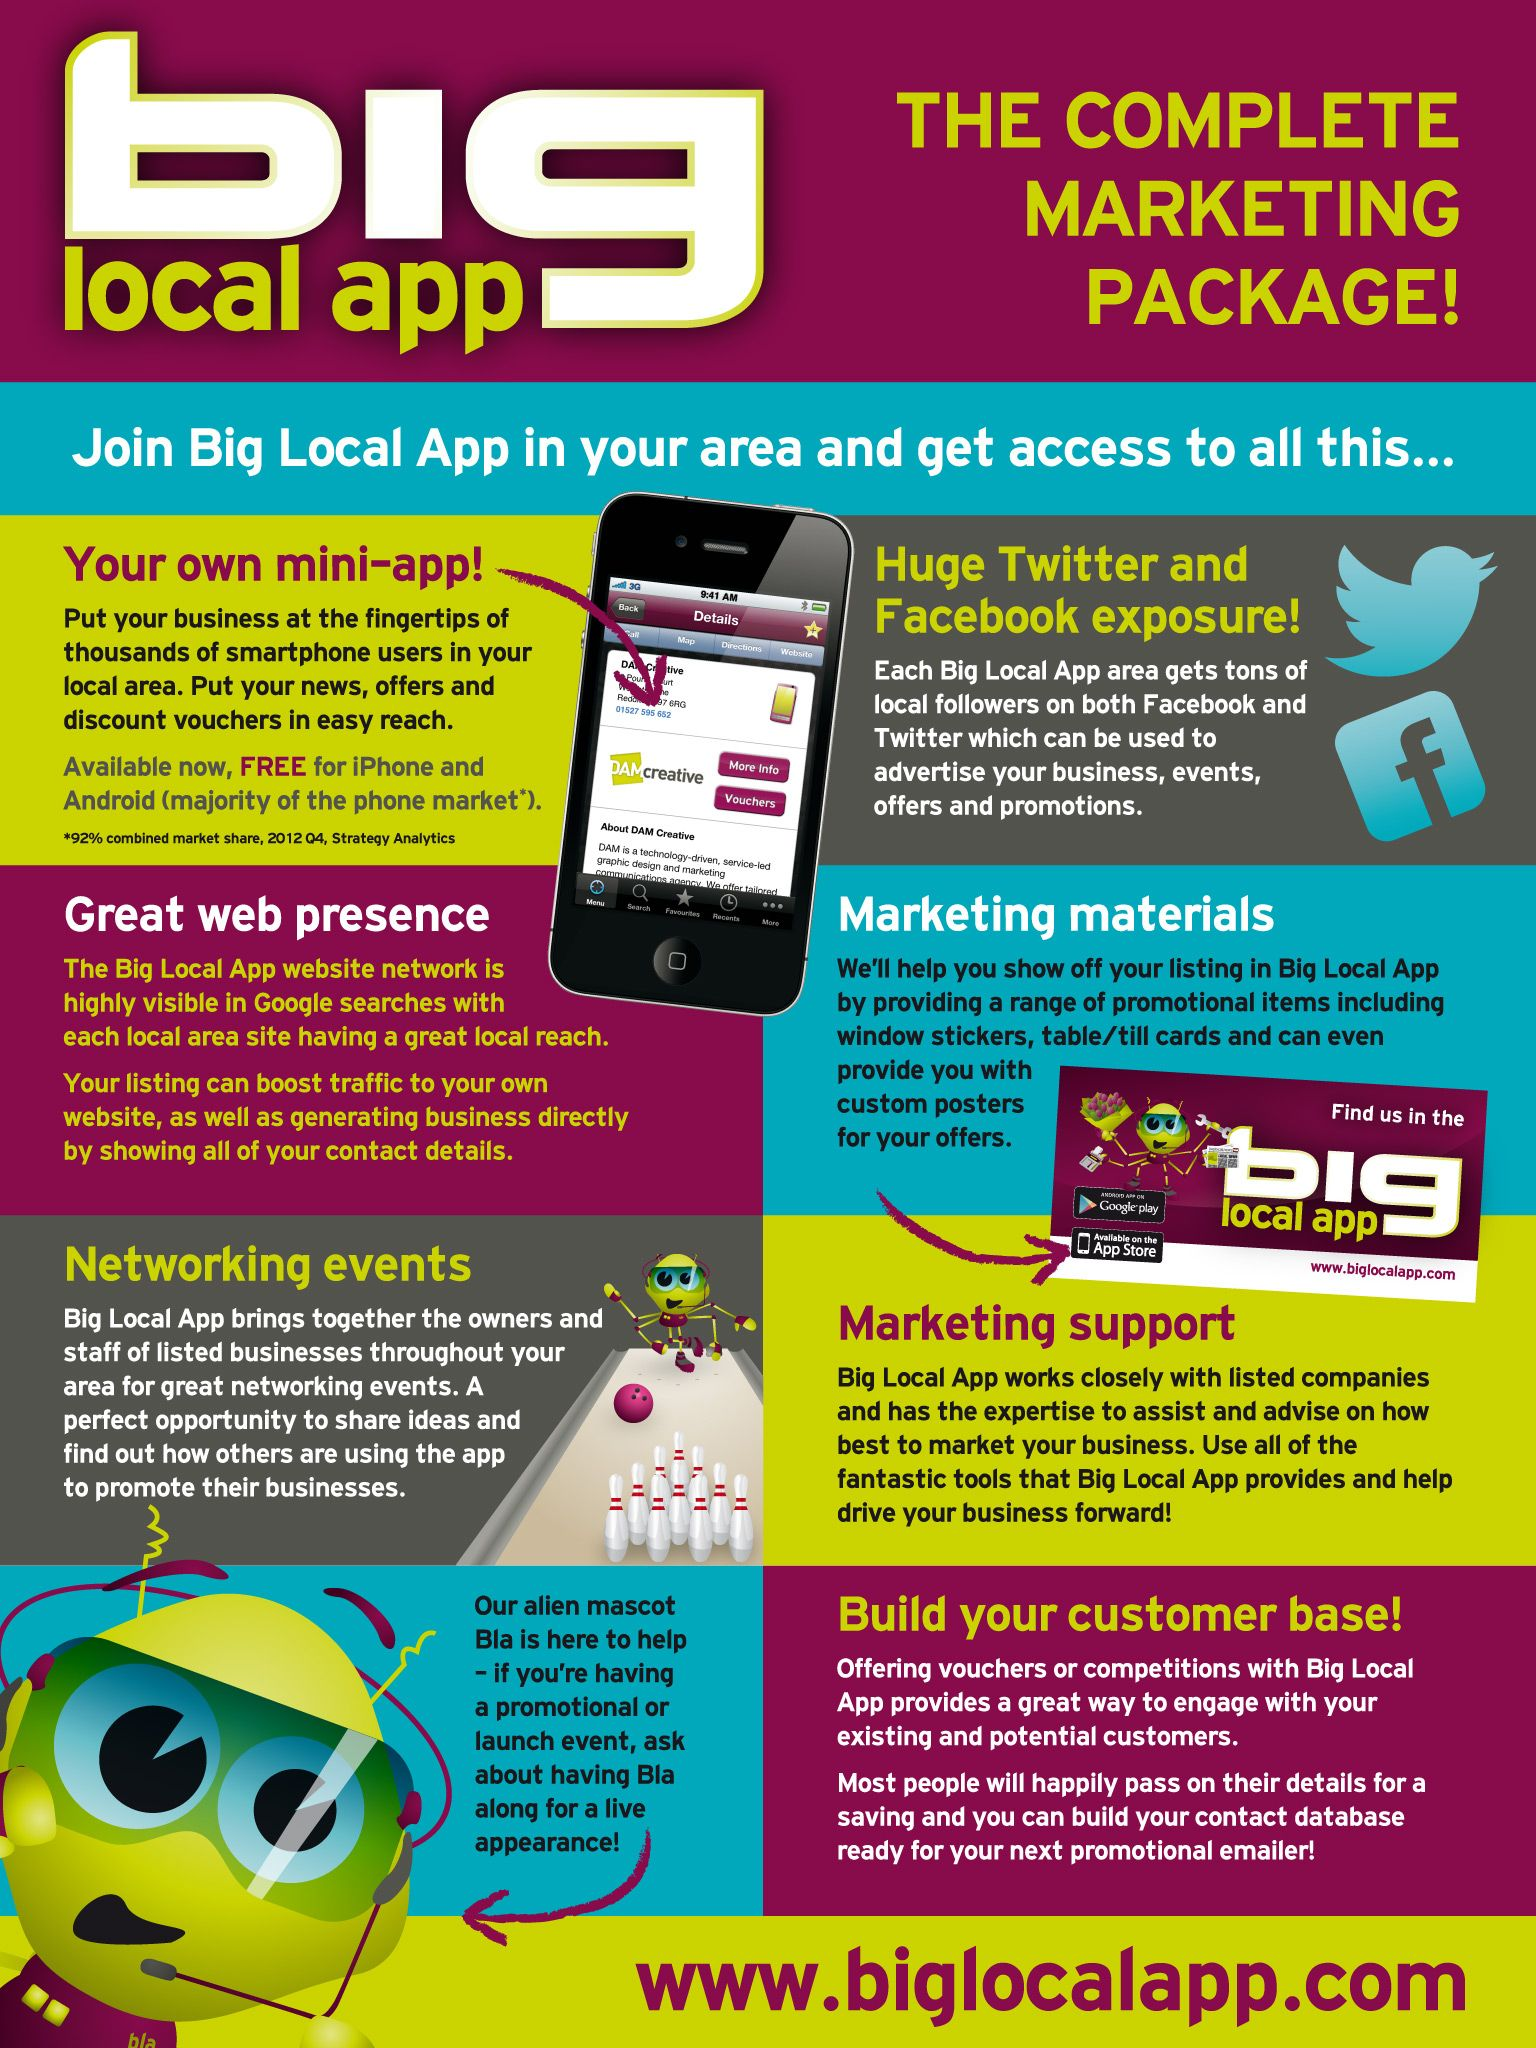 Some of the benefits of marketing your business in the Big Local App